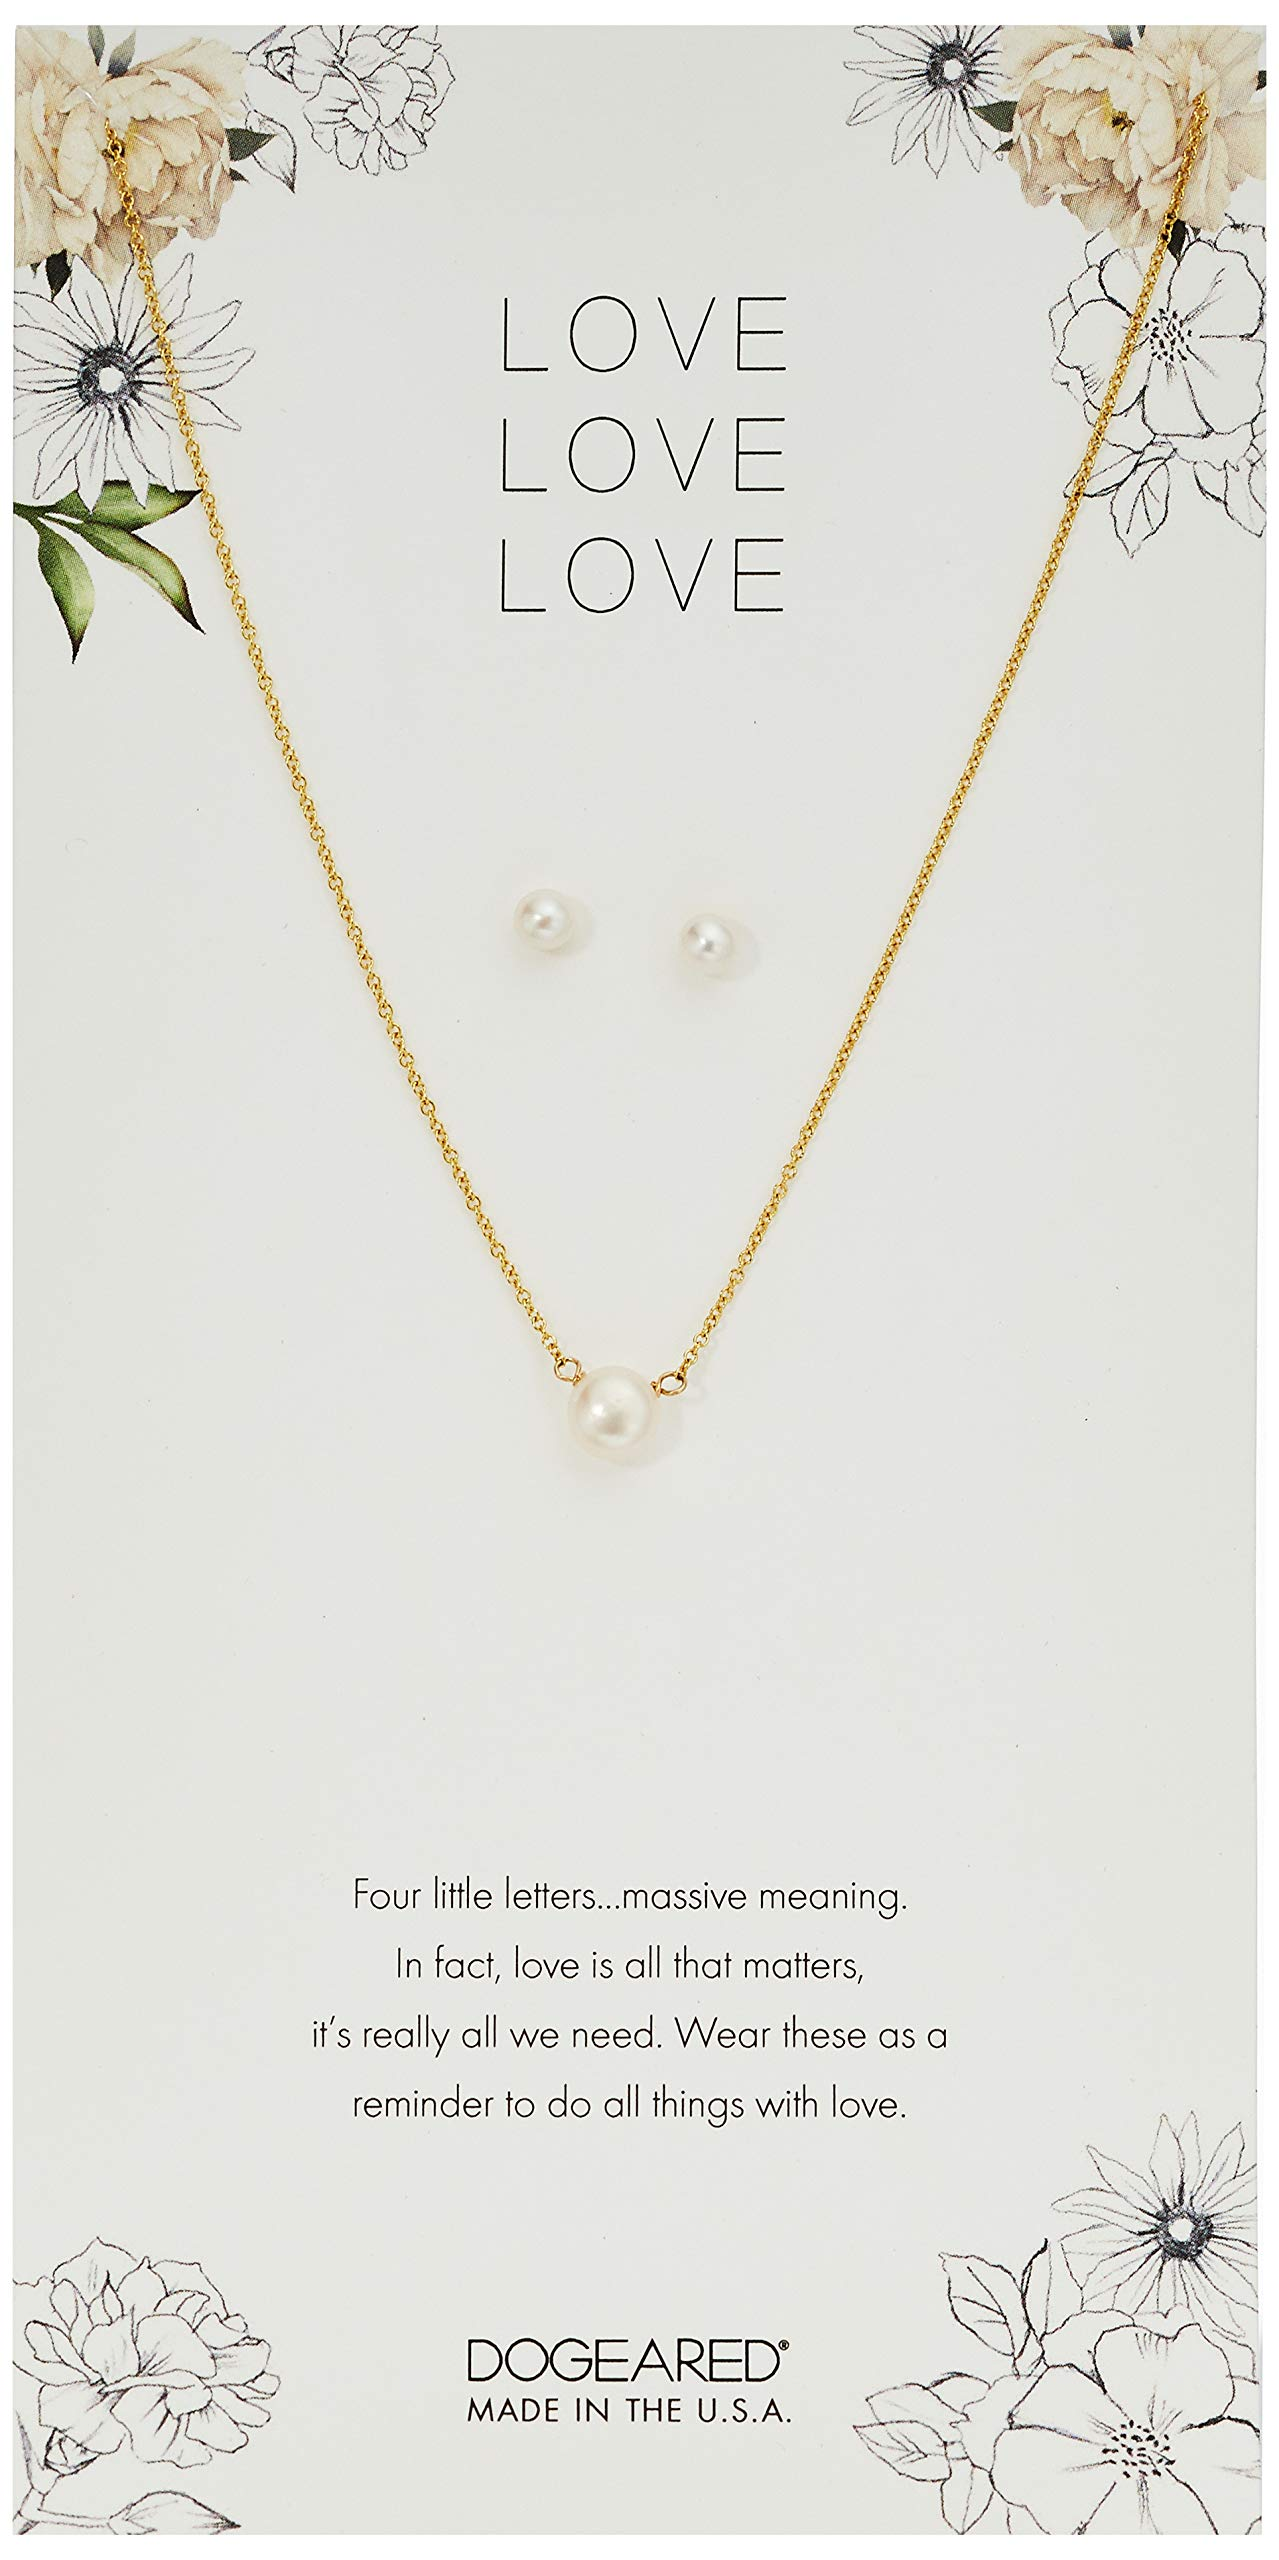 Dogeared Love Small Button Pearl Necklace And Pearl Earrings, Gold, 16'' + 2'' Extension